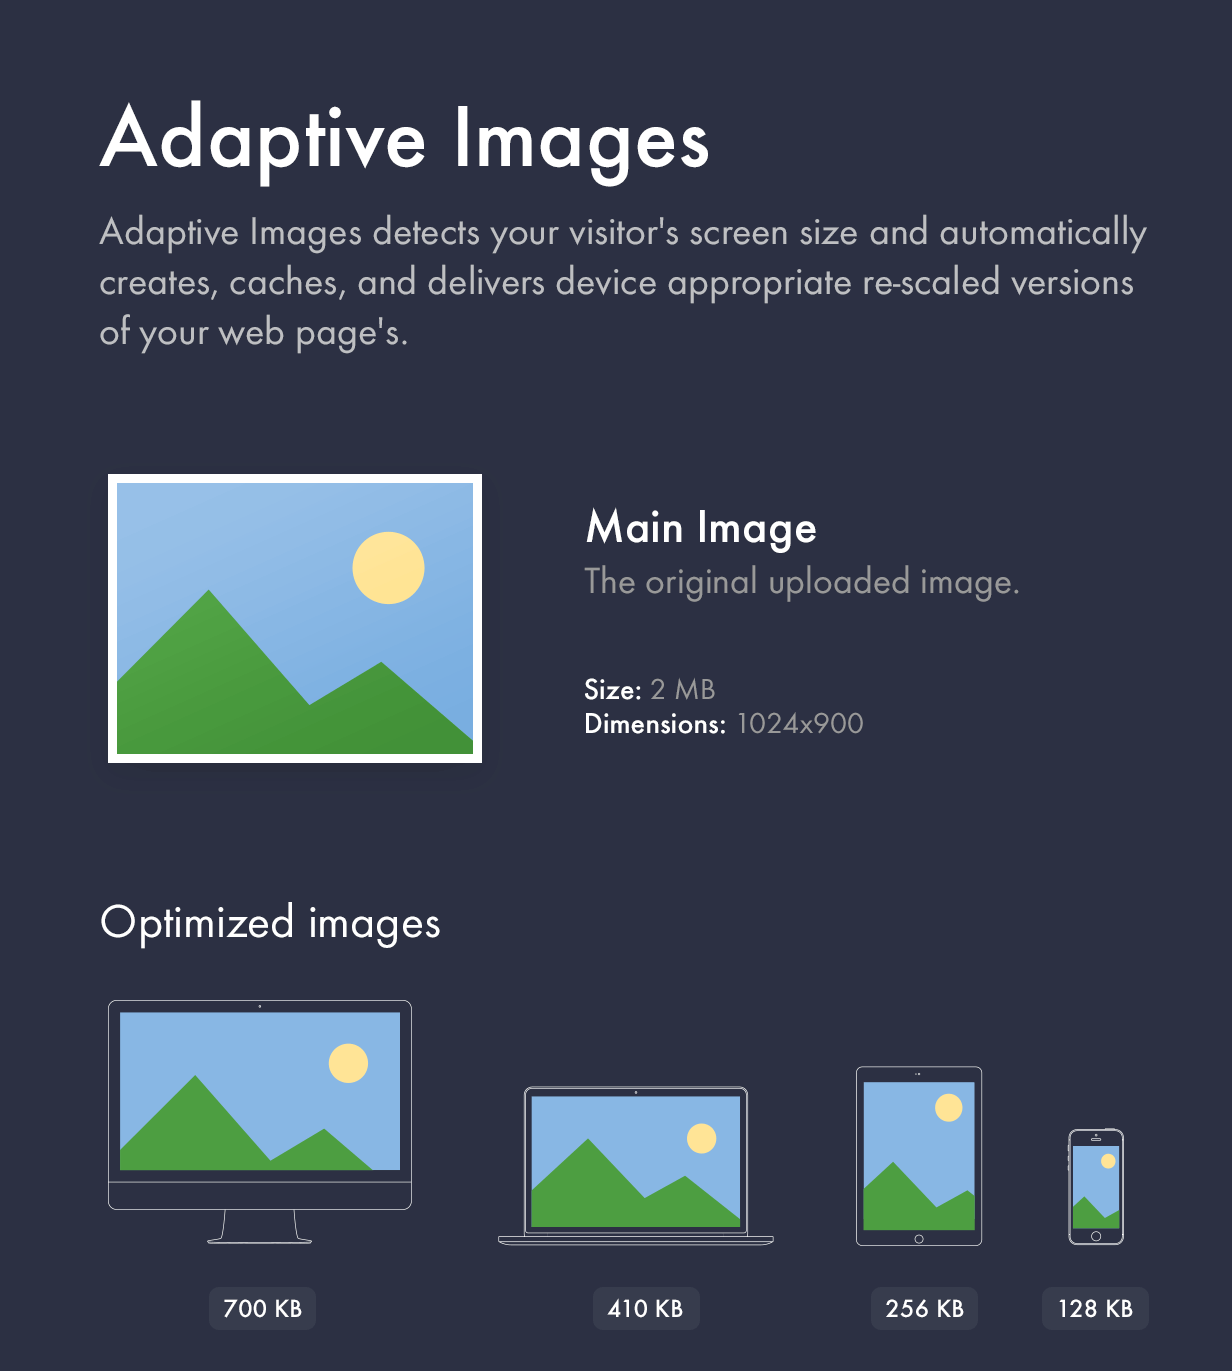 Adaptive Images technology adaptive images - Kalium – Creative Theme for Professionals